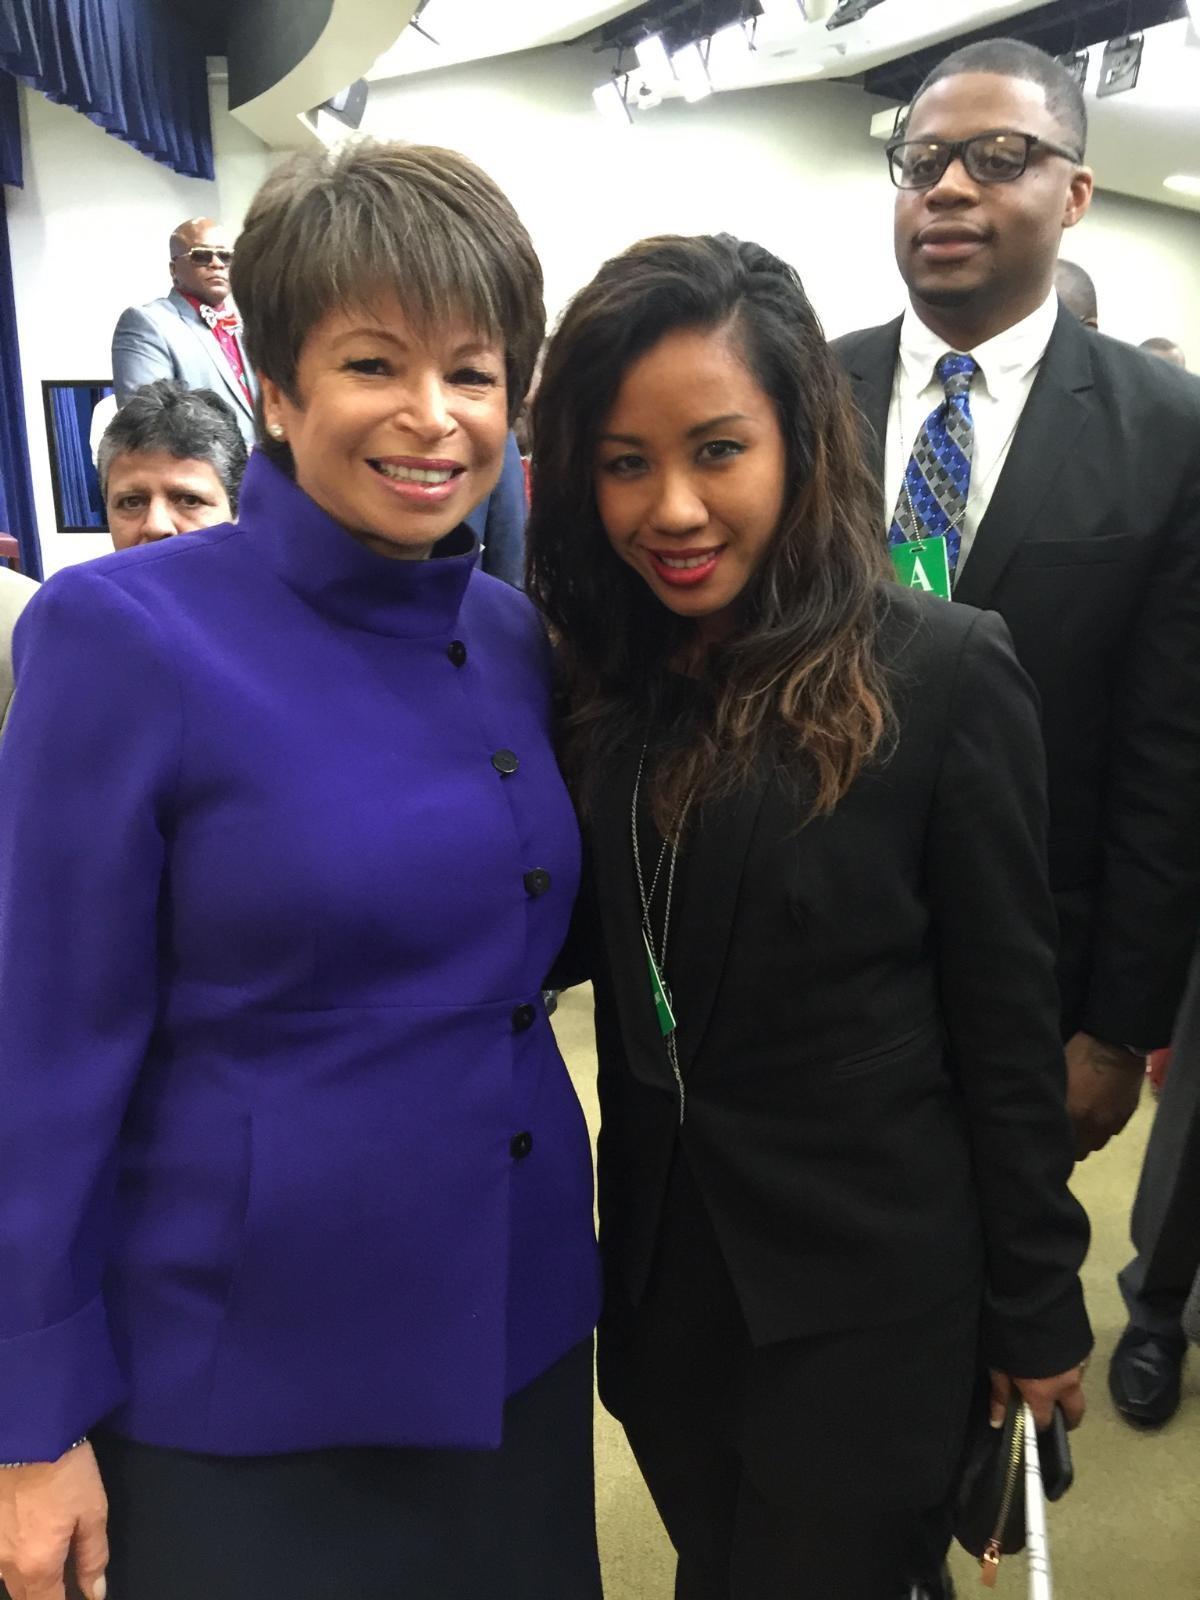 Honorable Valerie Jarrett